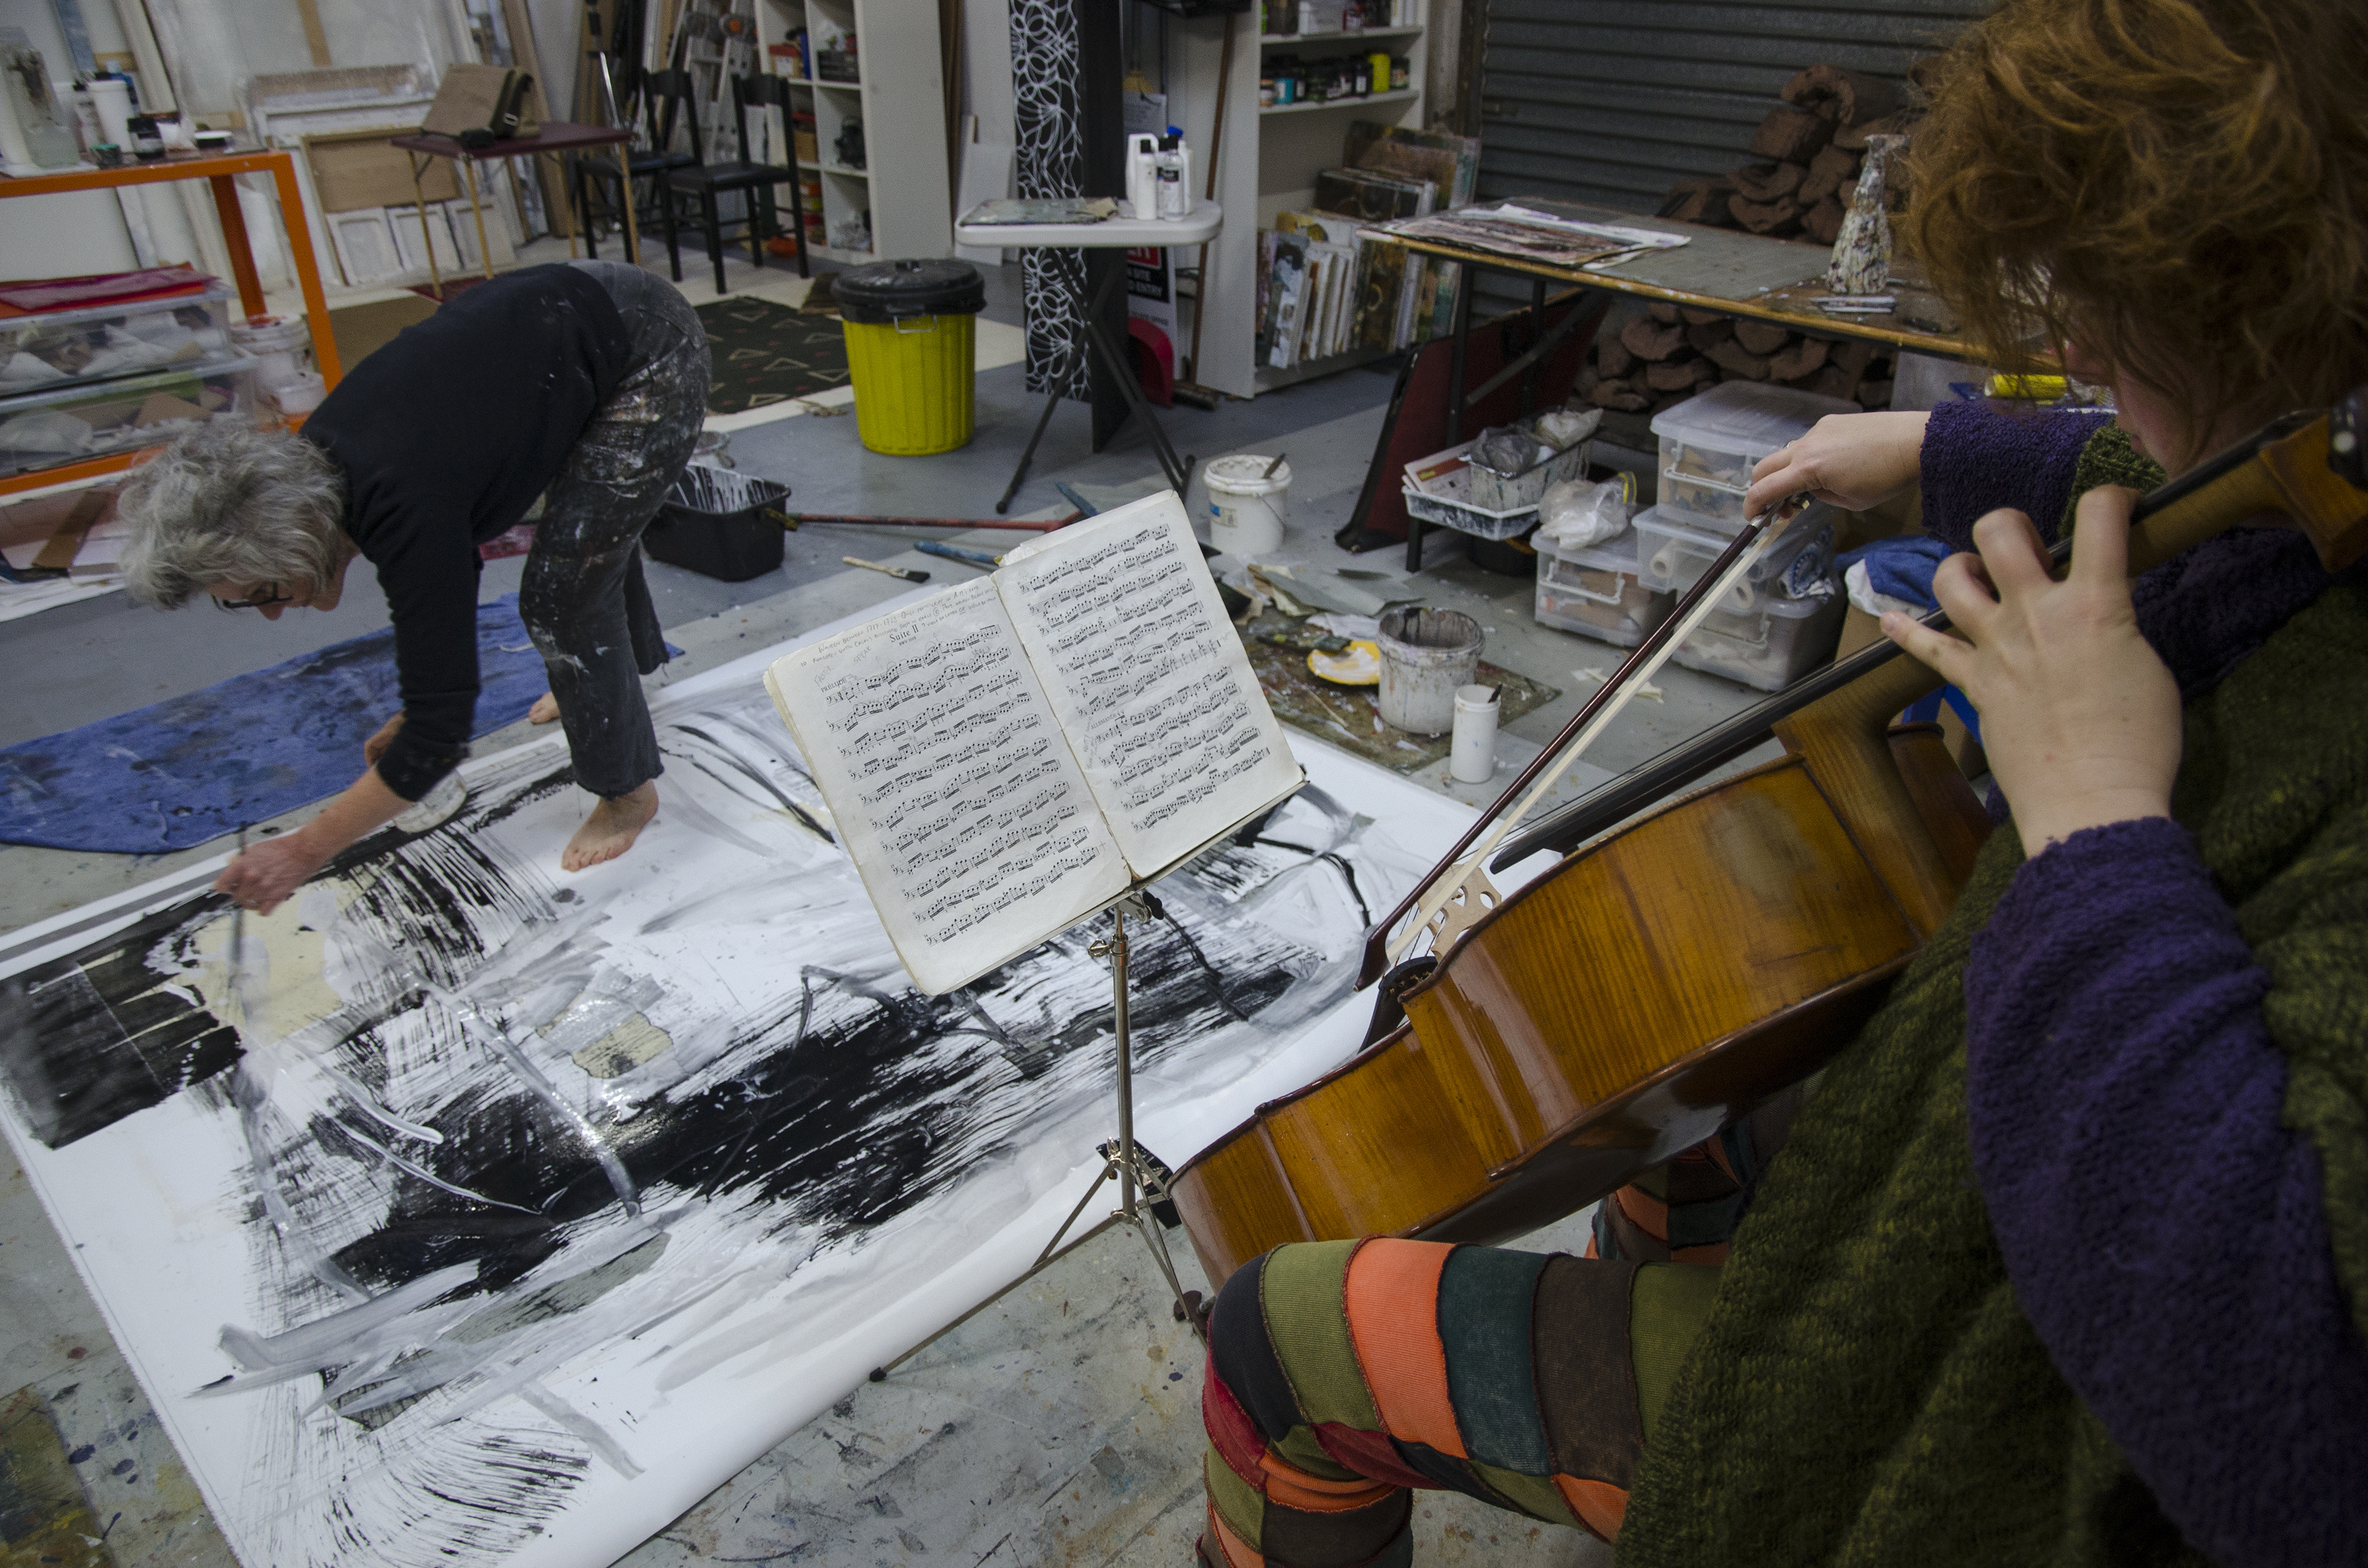 Judith White painting to Rachel Scott playing J.S.Bach's Prelude No2 in Dm for Cello